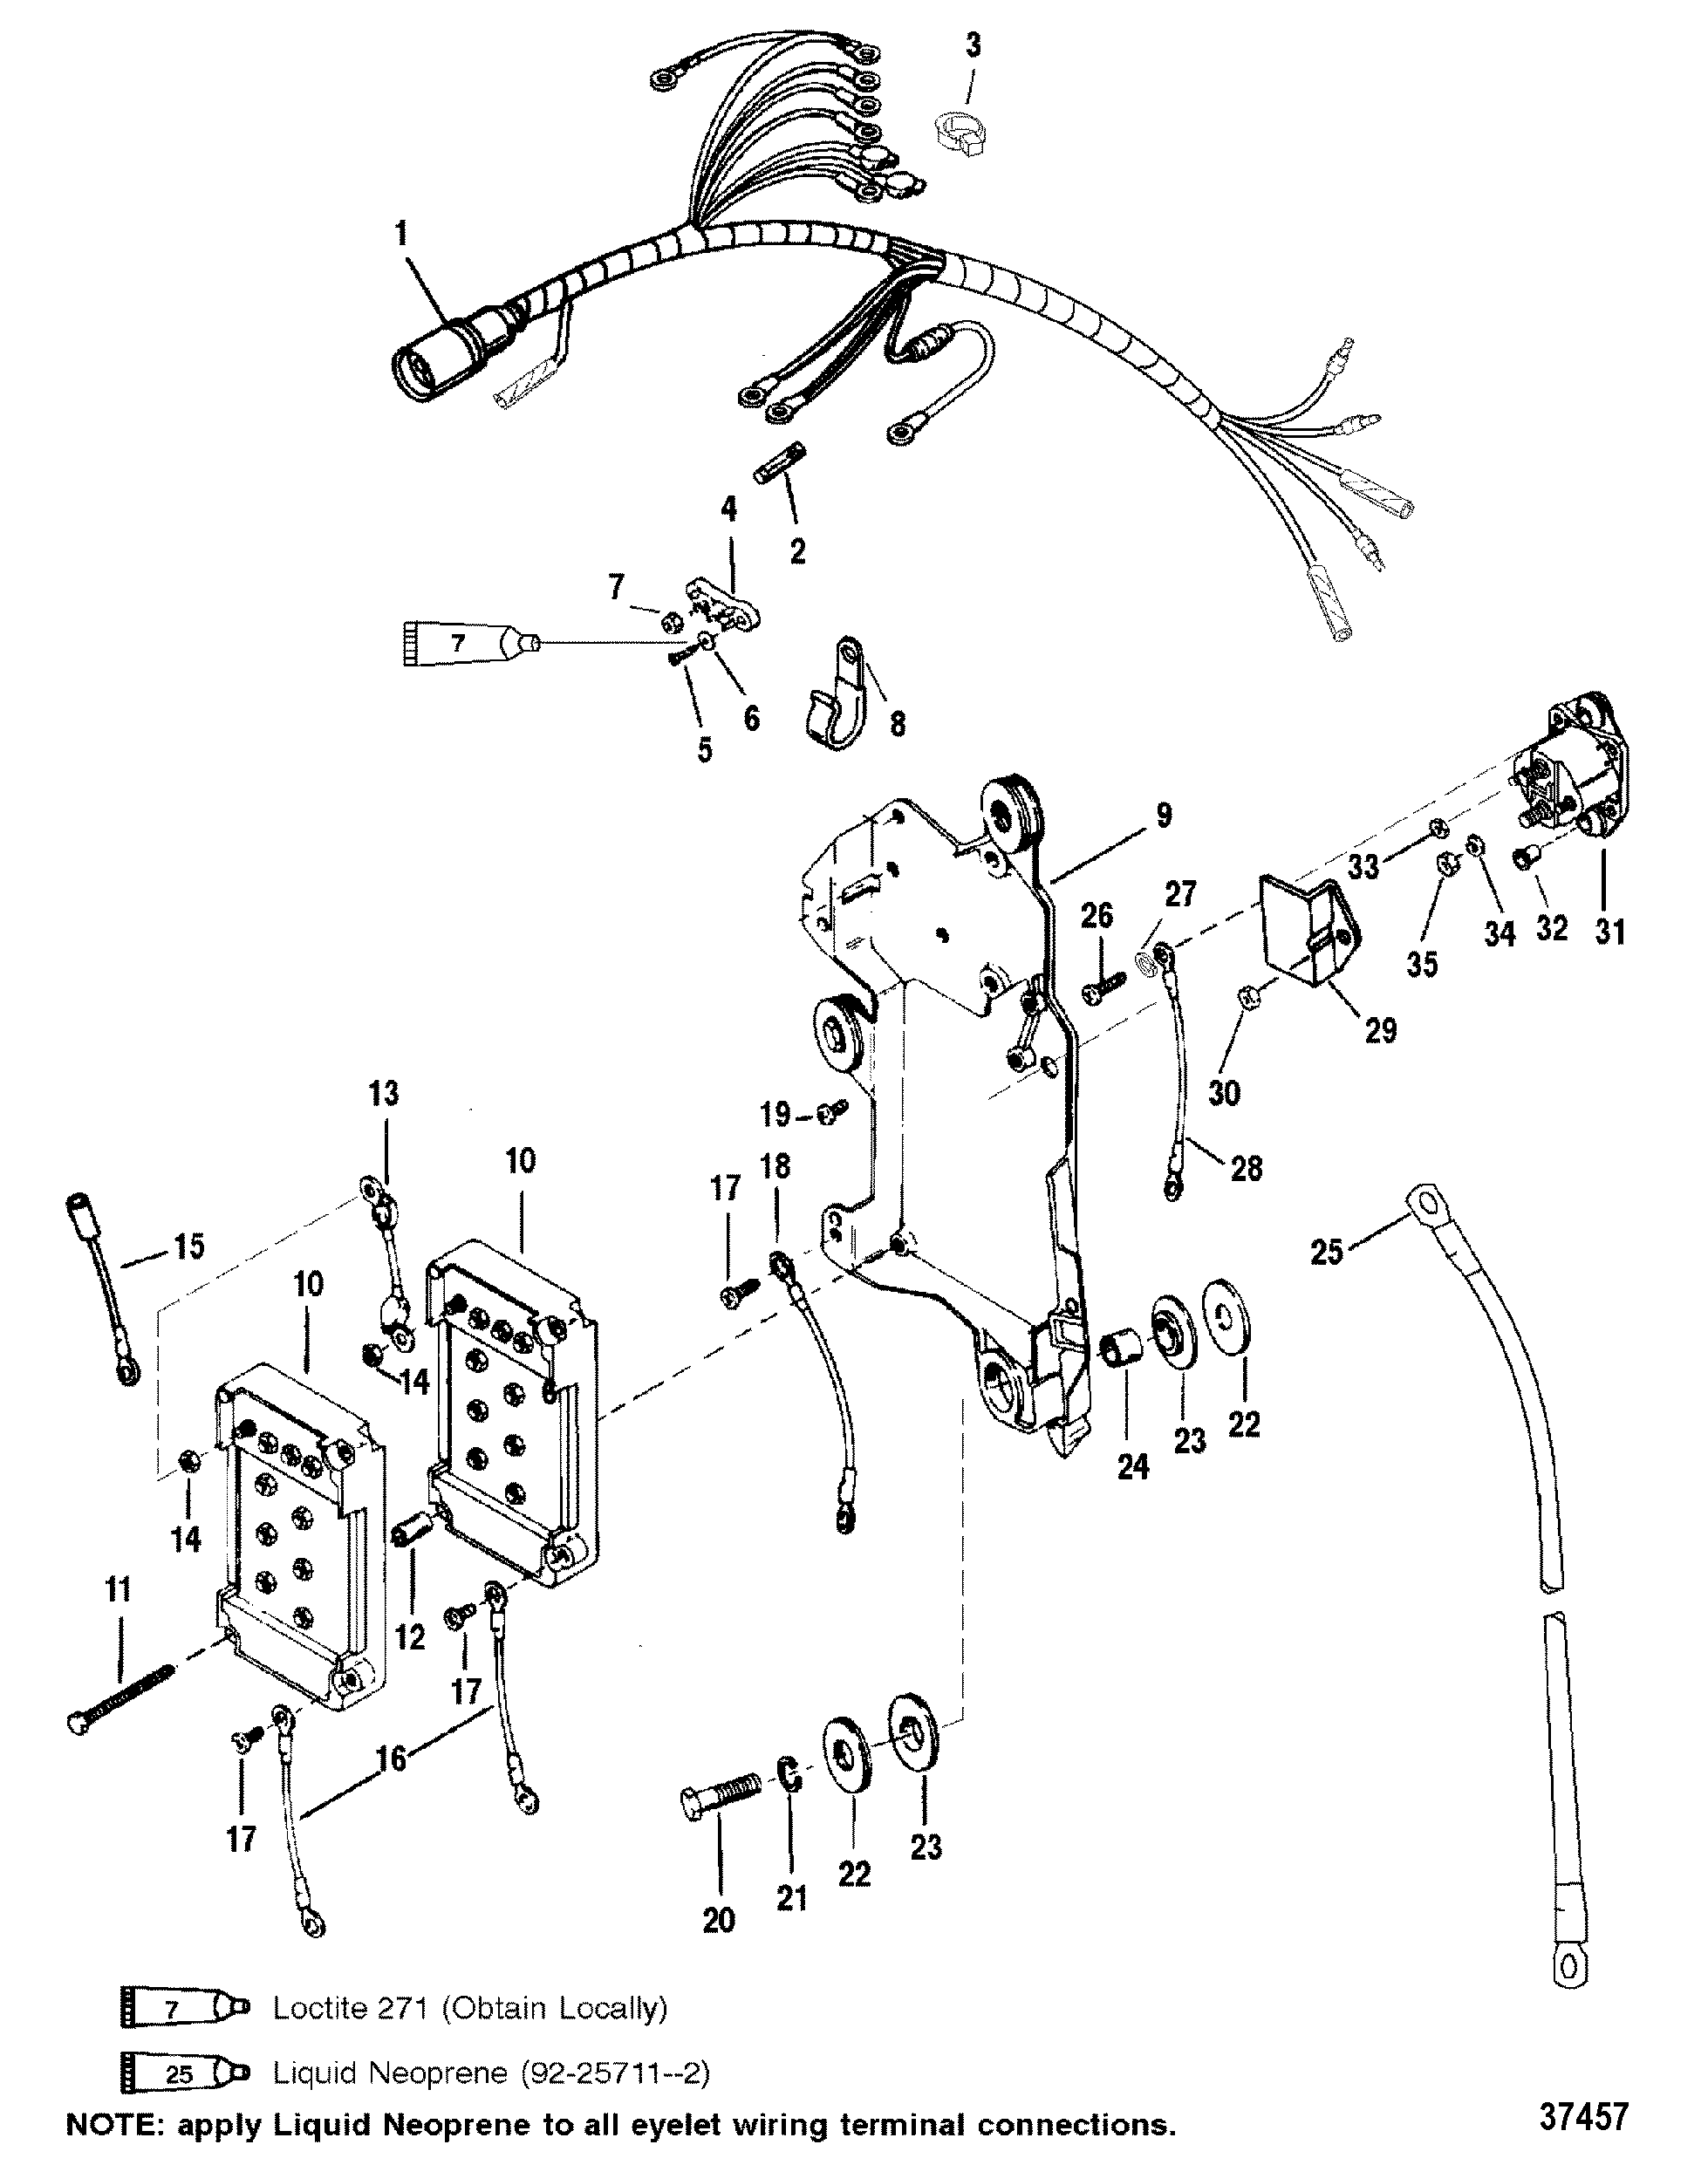 37457 wiring harness starter solenoid for mariner mercury 150 175 200 efi mercury 14 pin wiring harness diagram at edmiracle.co